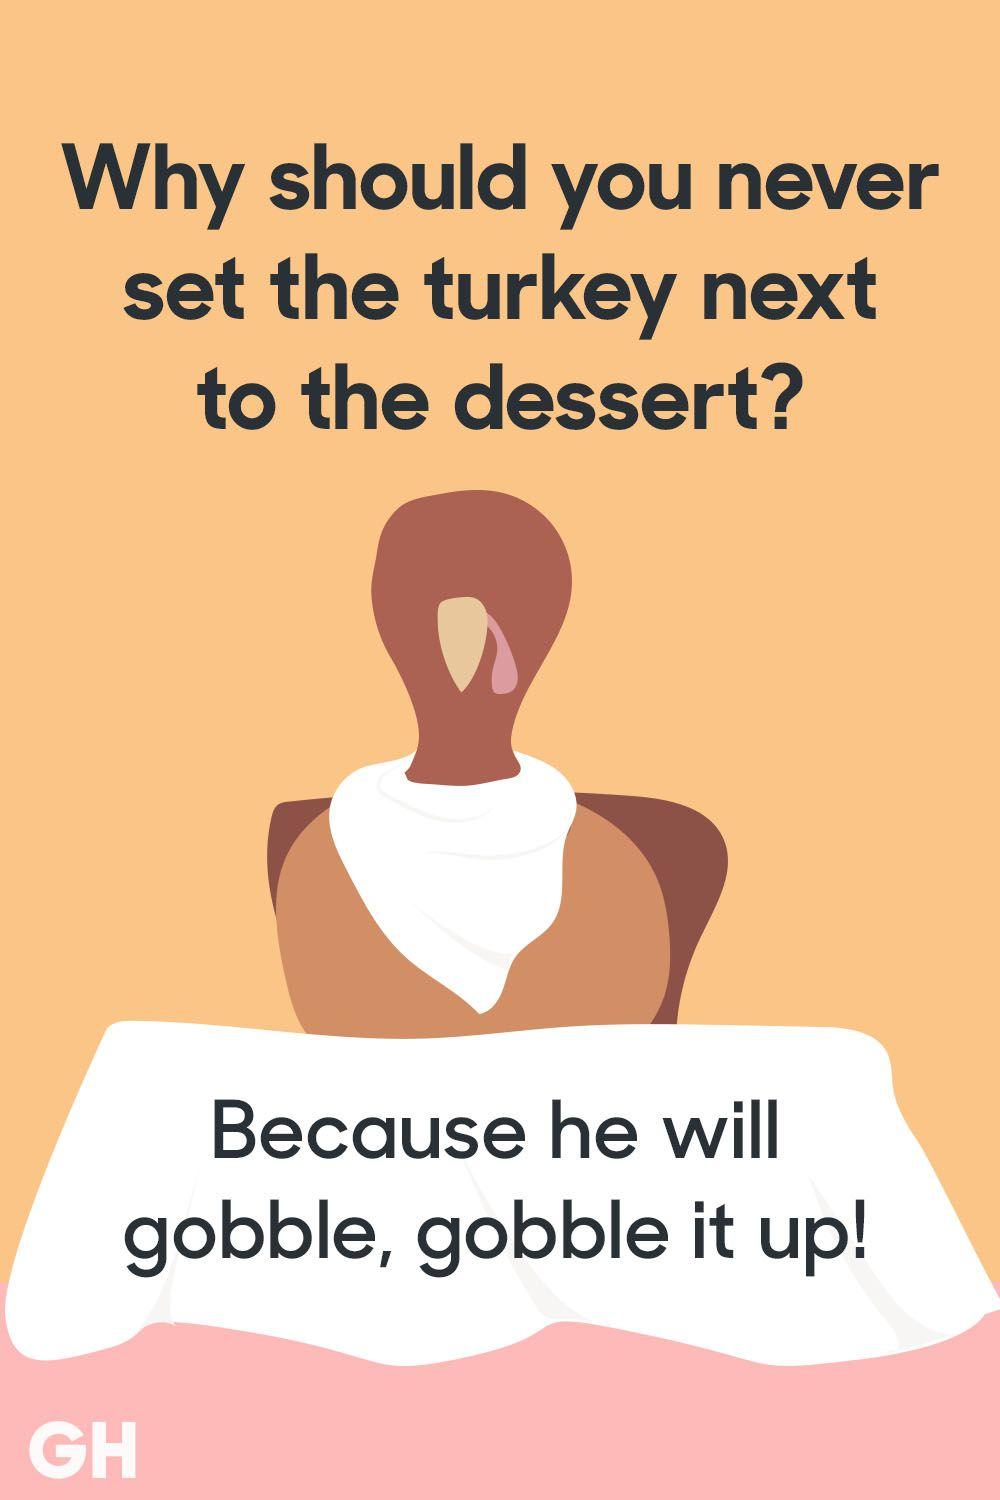 20 Funny Thanksgiving Jokes to Tell This Year - Best Thanksgiving